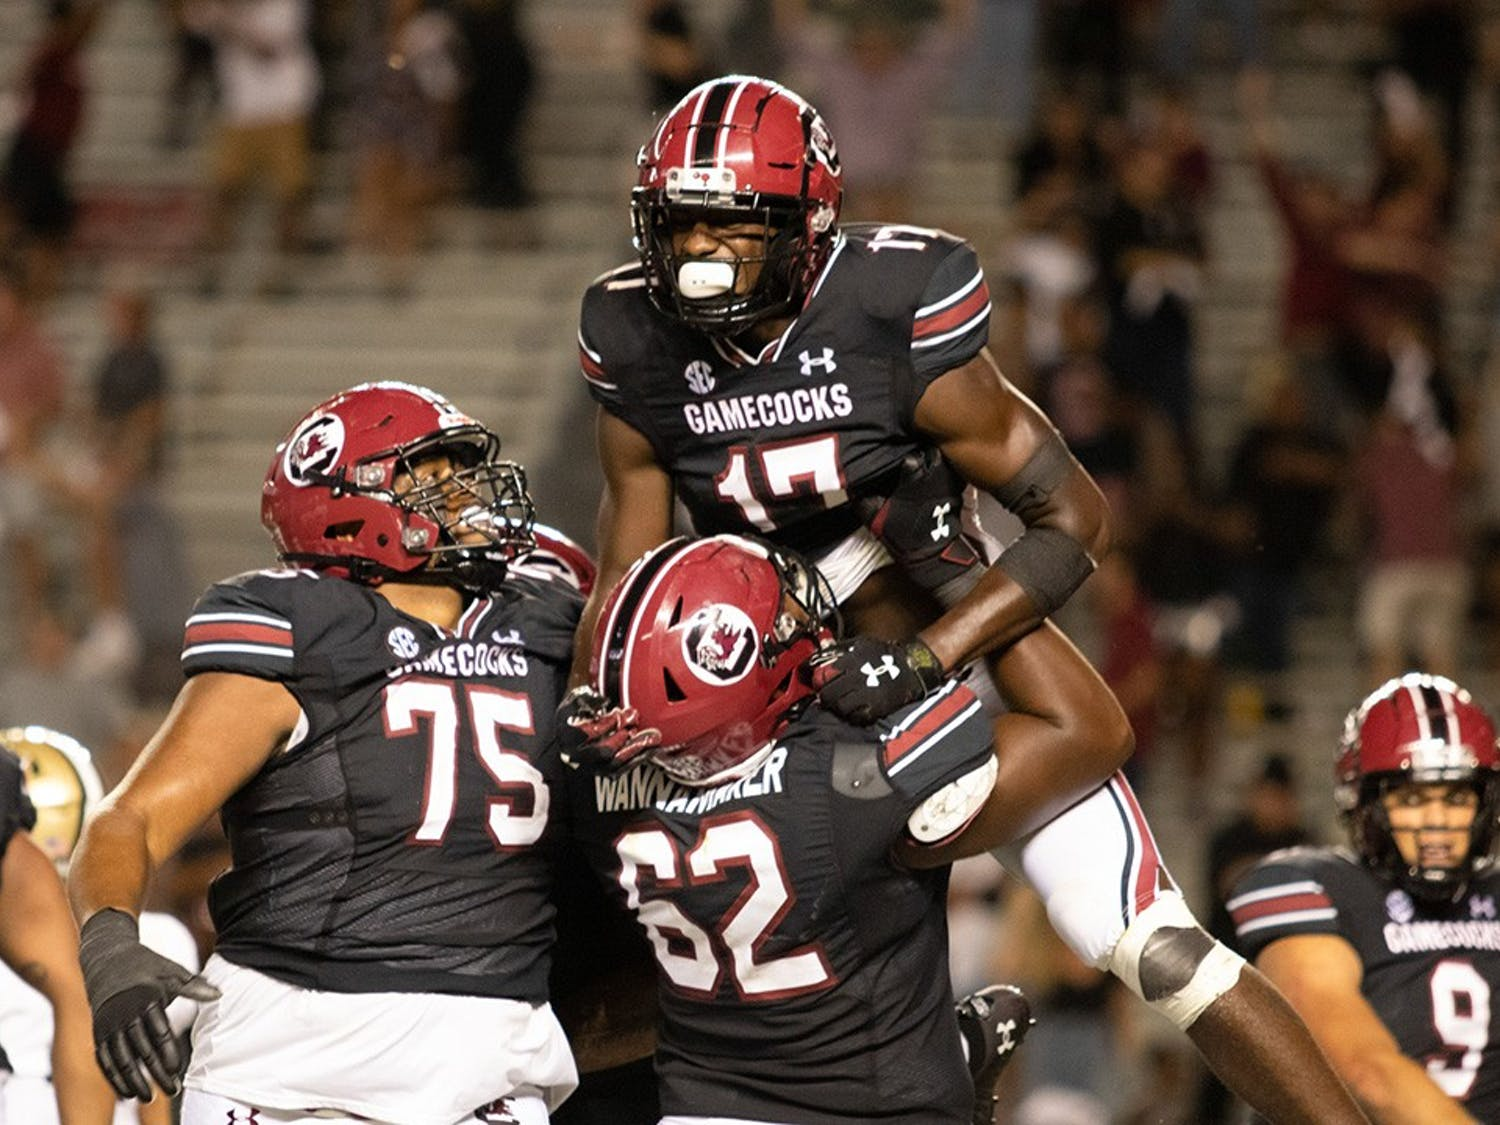 Gamecock football players celebrate junior wide receiver Xavier Legette after he caught the winning touchdown pass. The Gamecocks defeated the Vanderbilt Commodores with a touchdown in the fourth quarter.